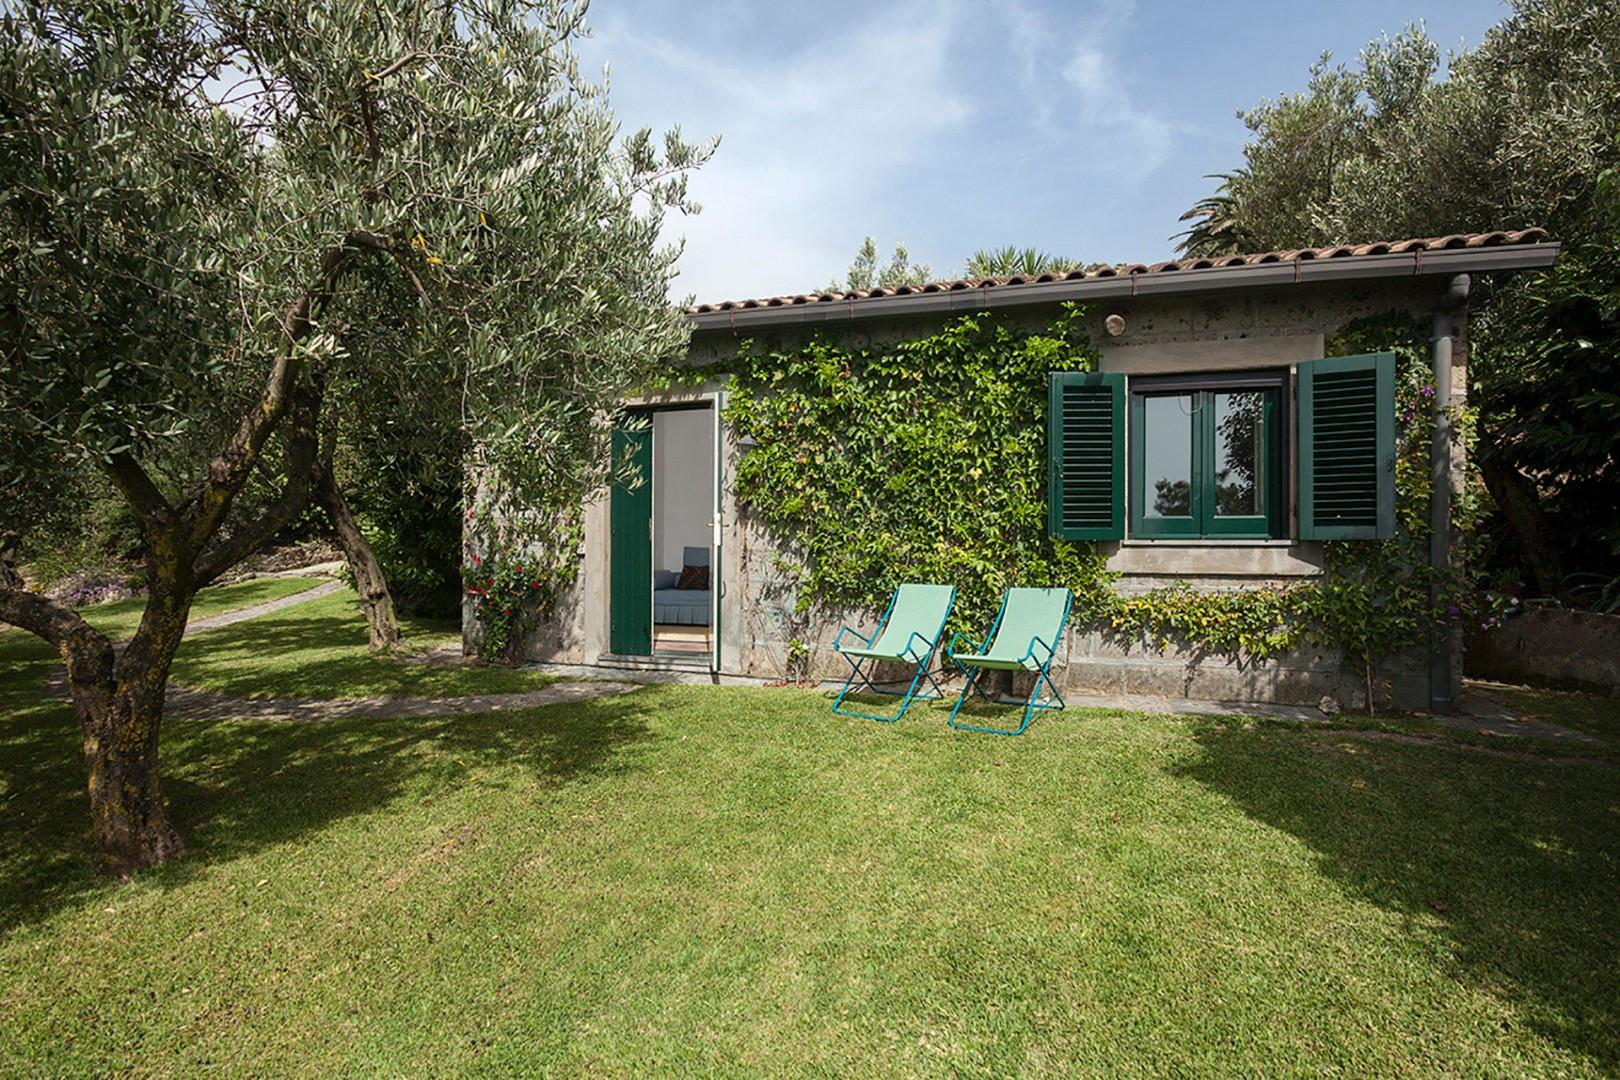 The cottage sleeps 3 more guests. It is on the main grounds, not far from the pool but isolated.